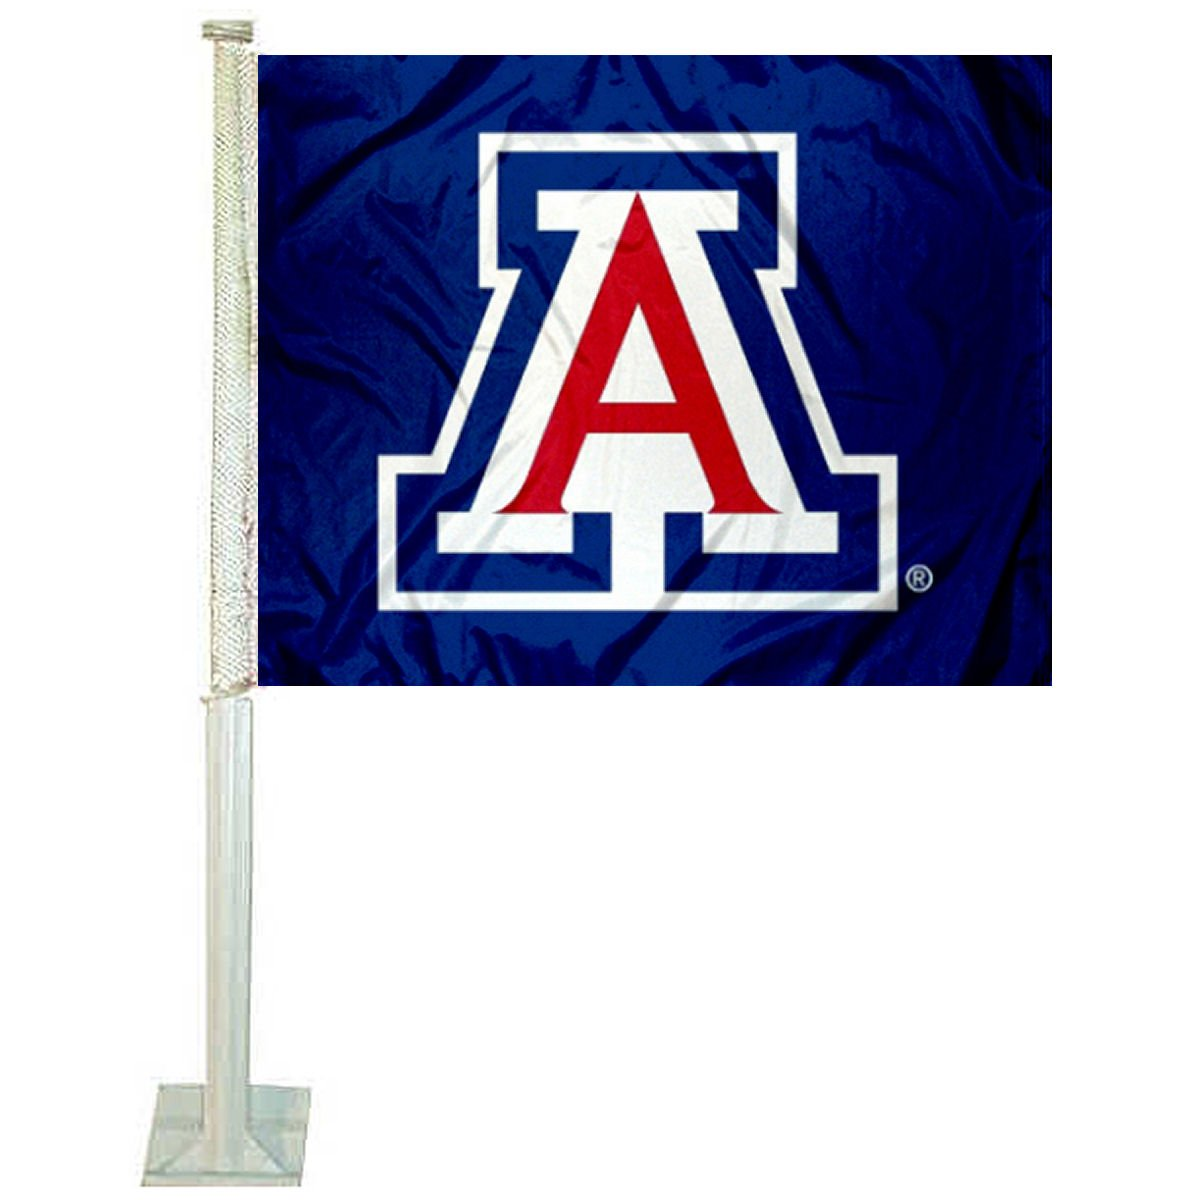 Arizona Wildcats Blue Car Flag College Flags and Banners Co.